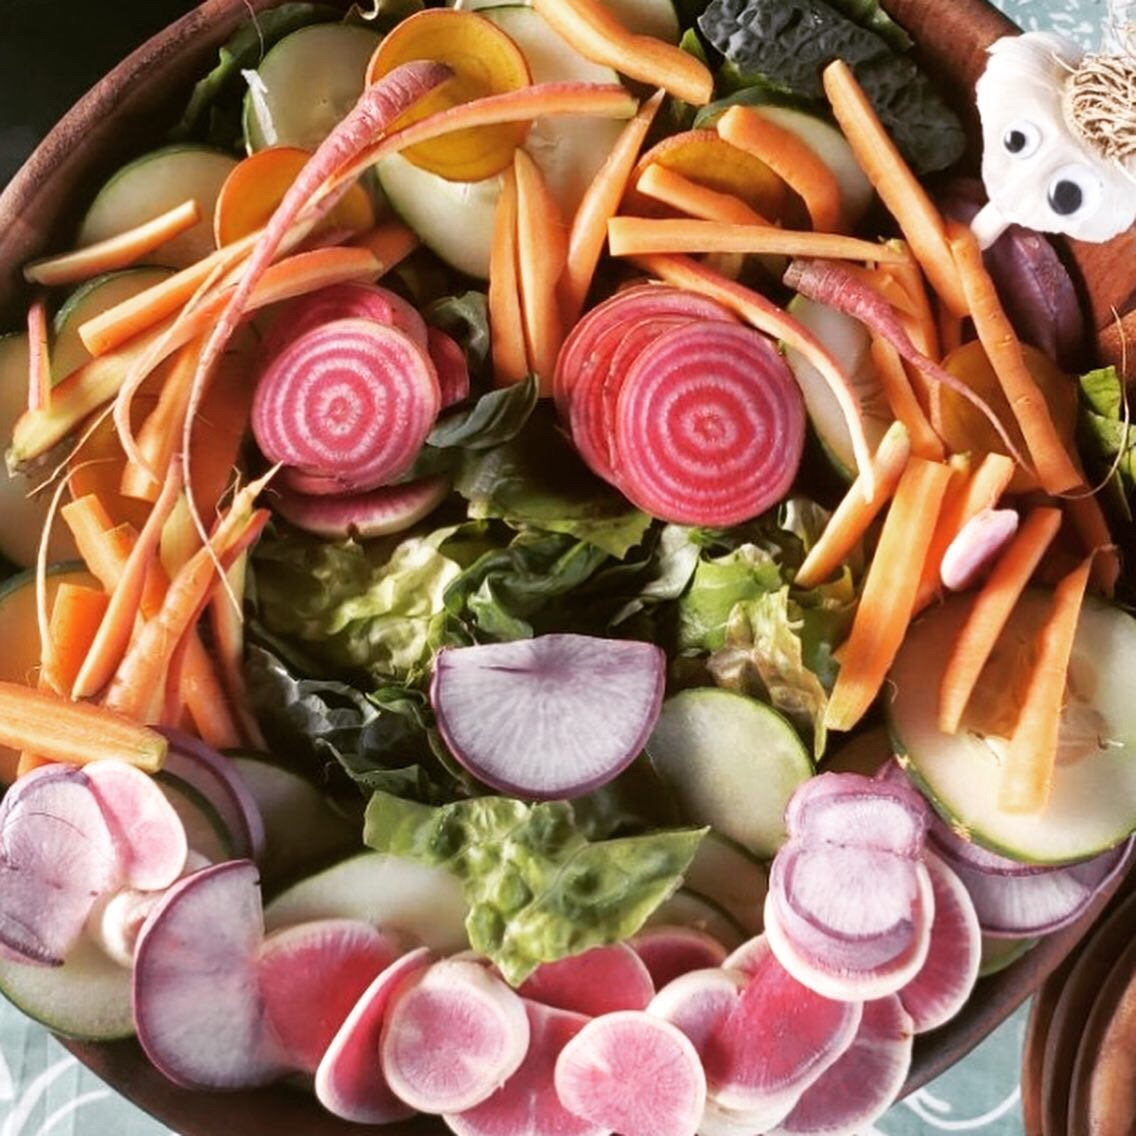 SALAD – My Go-To Easy, Healthy Meal